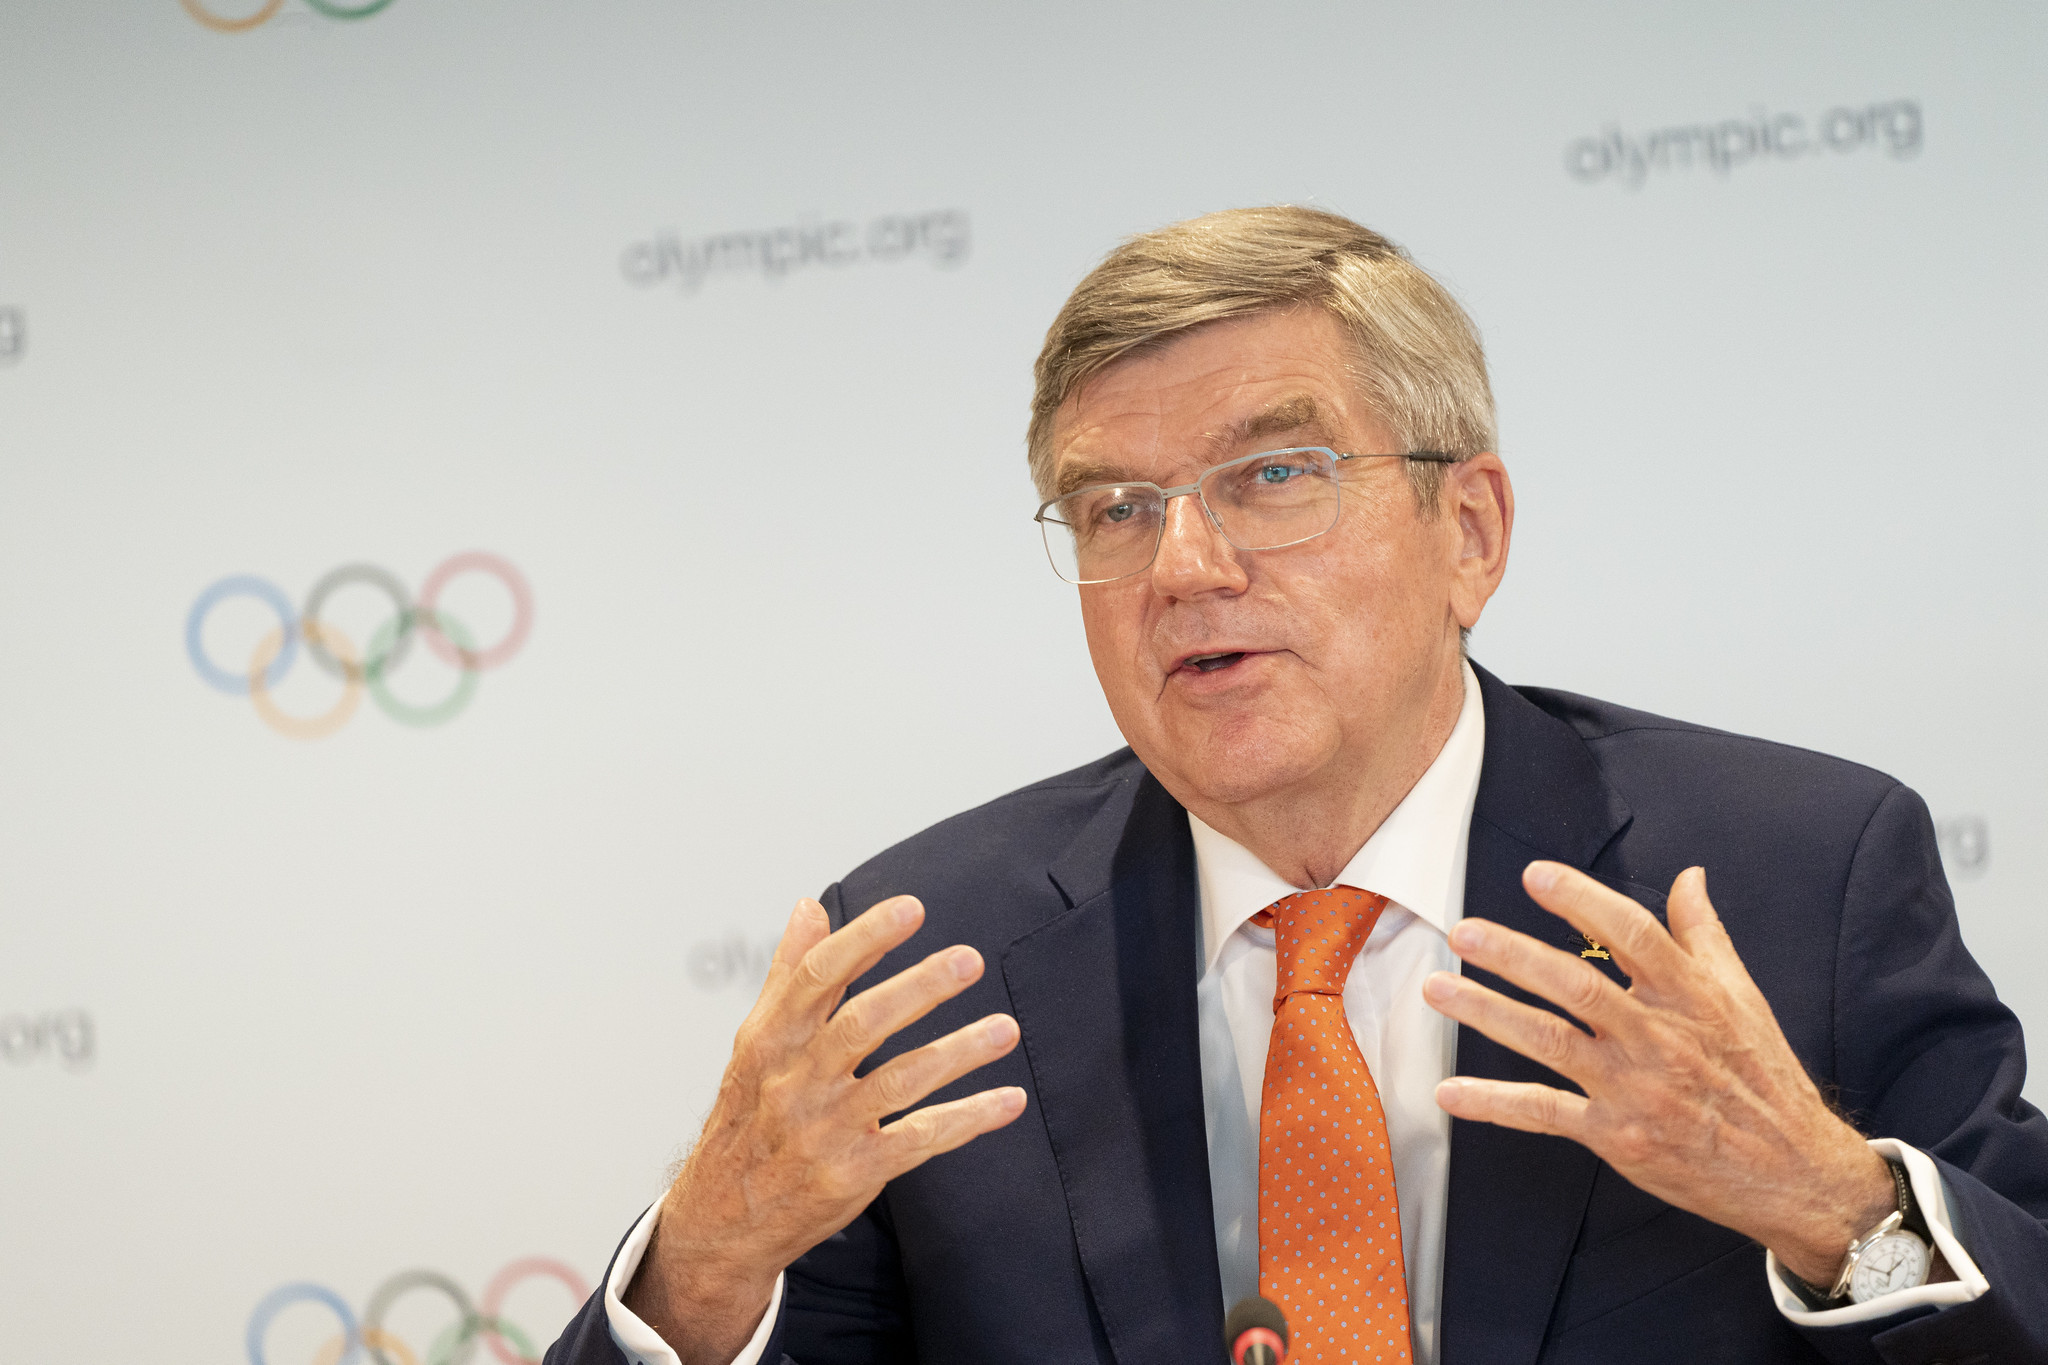 IOC President Thomas Bach has insisted the organisation will not partner with violent video games ©IOC